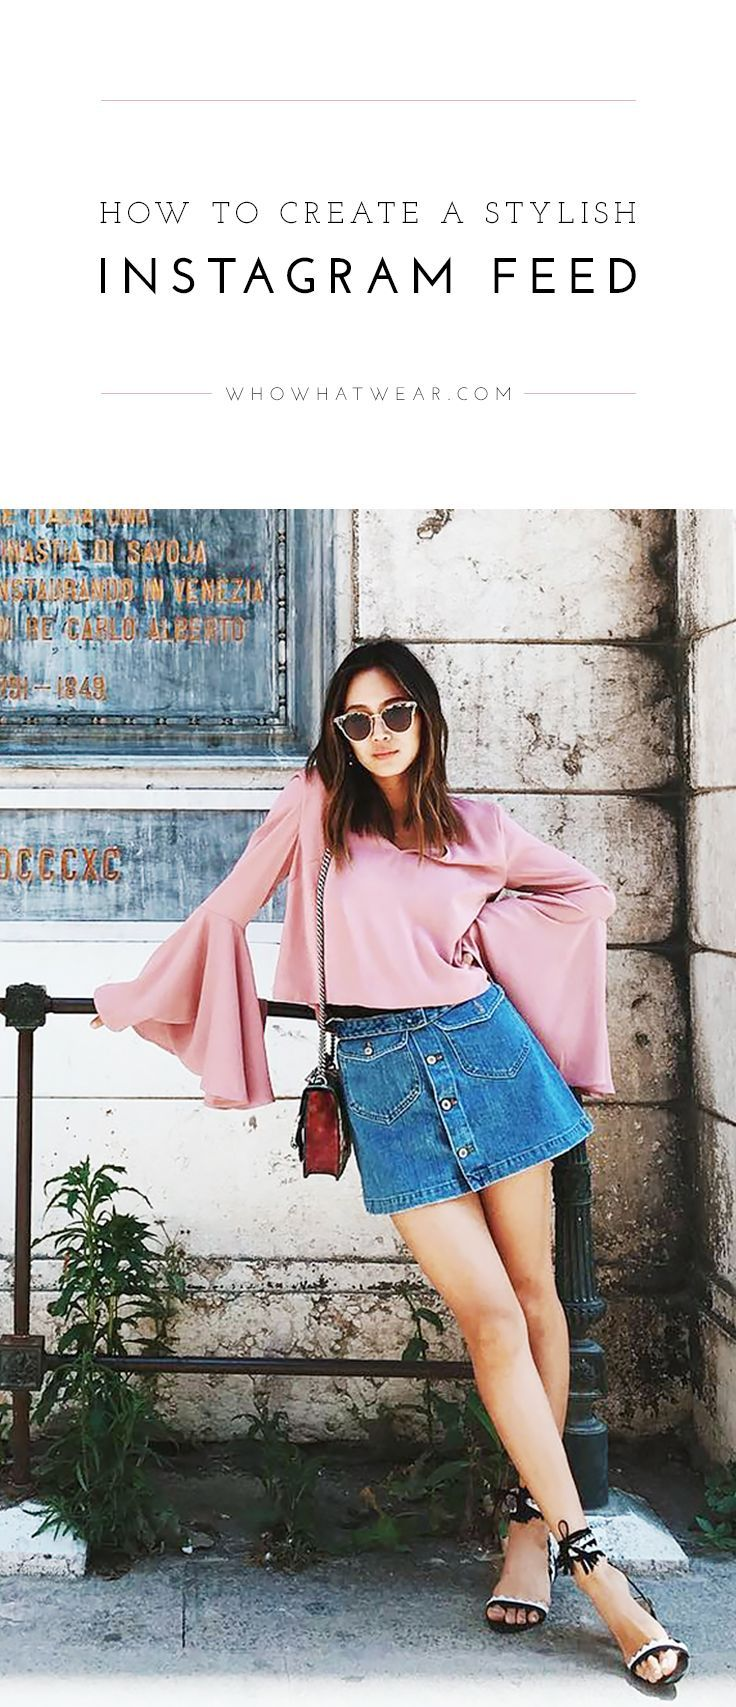 12 Secrets Behind Curating a Fashionable Instagram Feed How to get a fashion girl-worthy Instagram feedHow to get a fashion girl-worthy Instagram feed